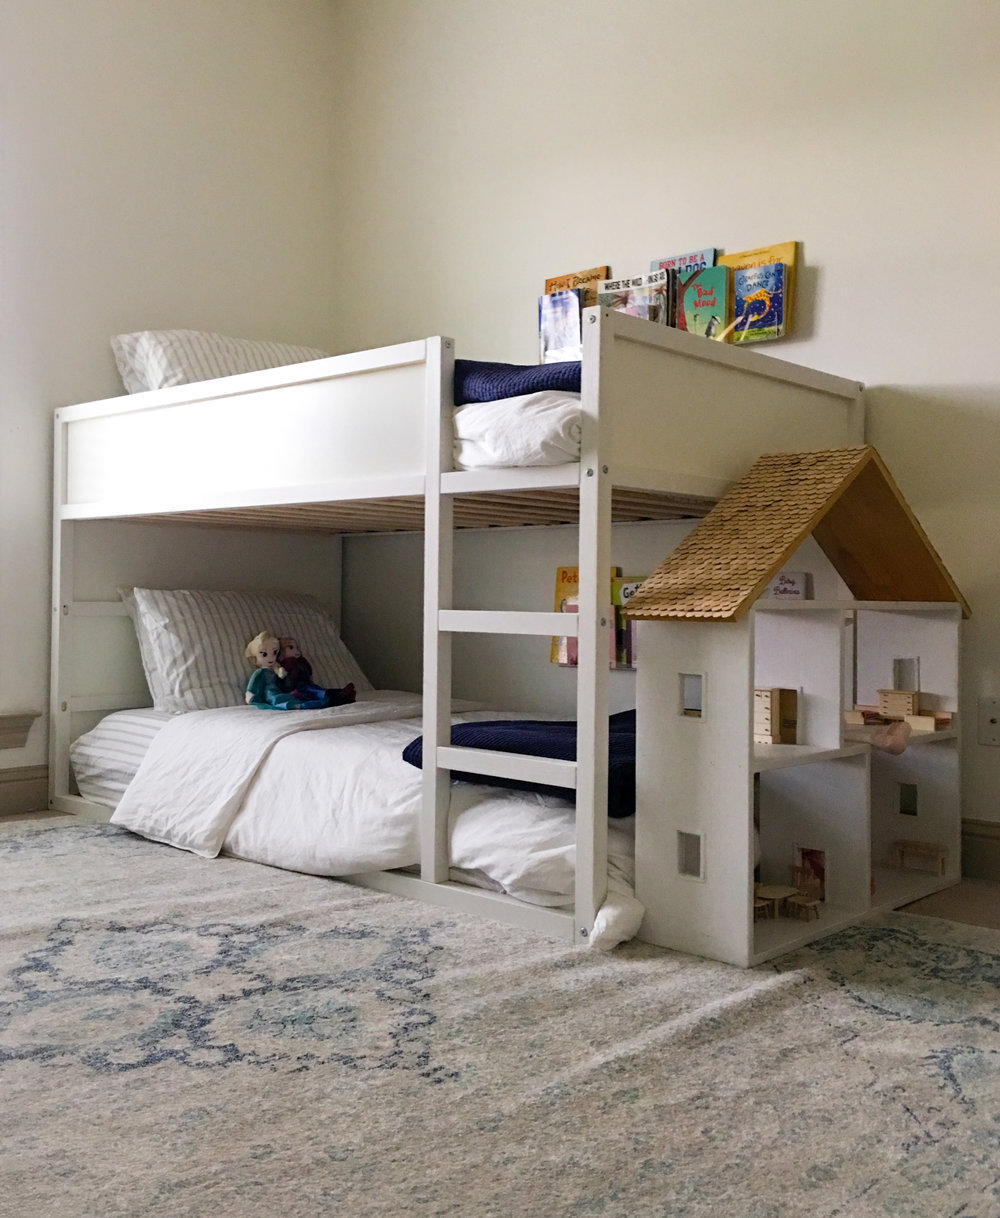 AFTER: bunks for two kids & lots more light